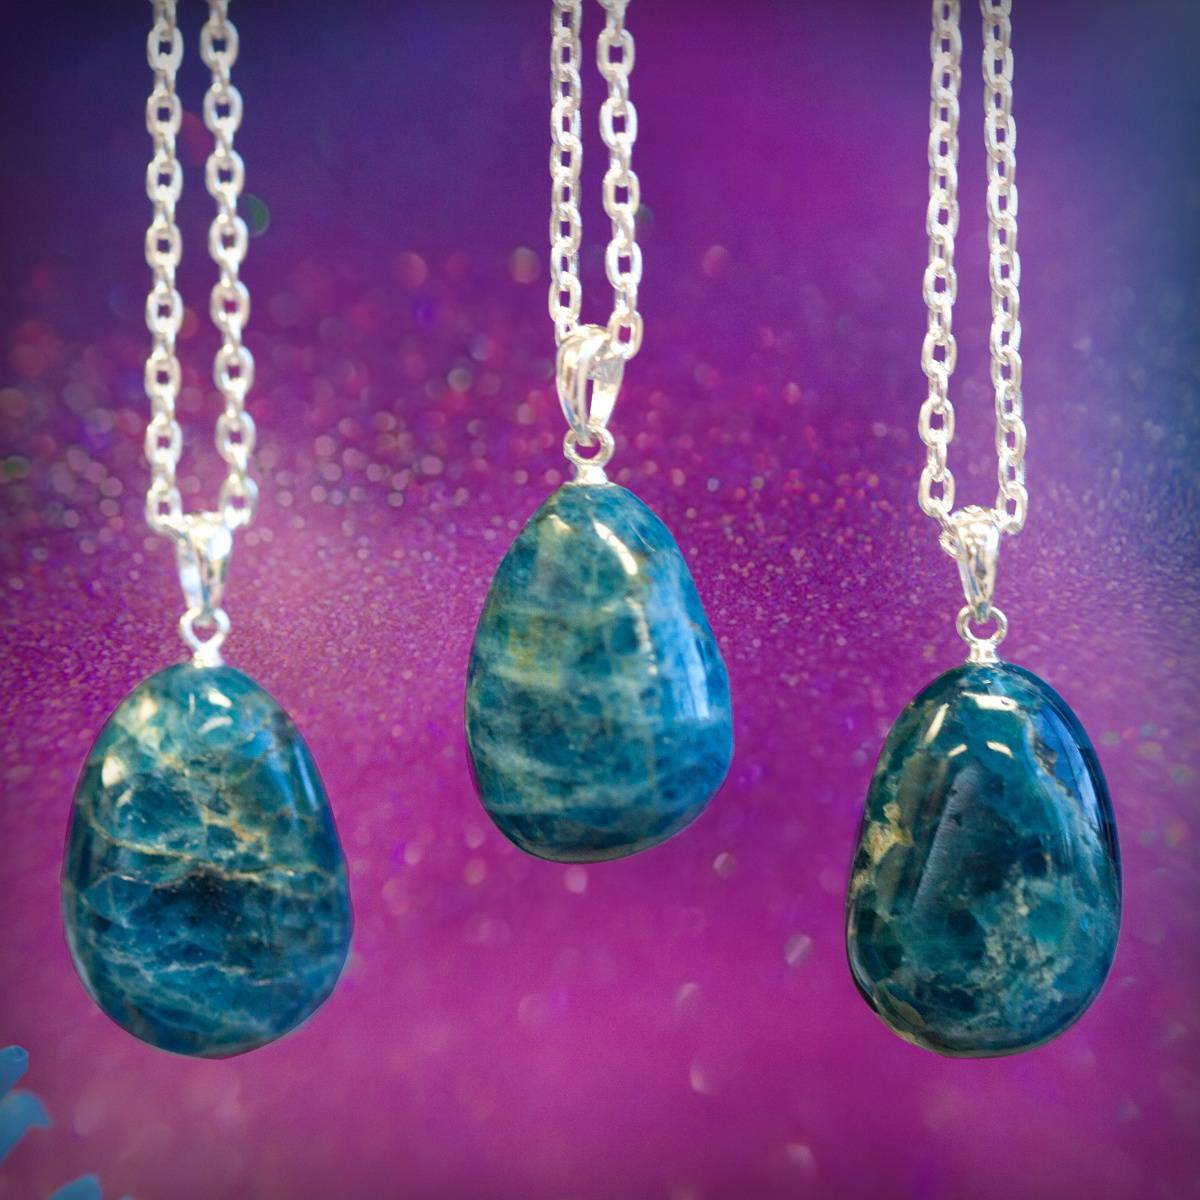 Astral Travel Pendants 6_1